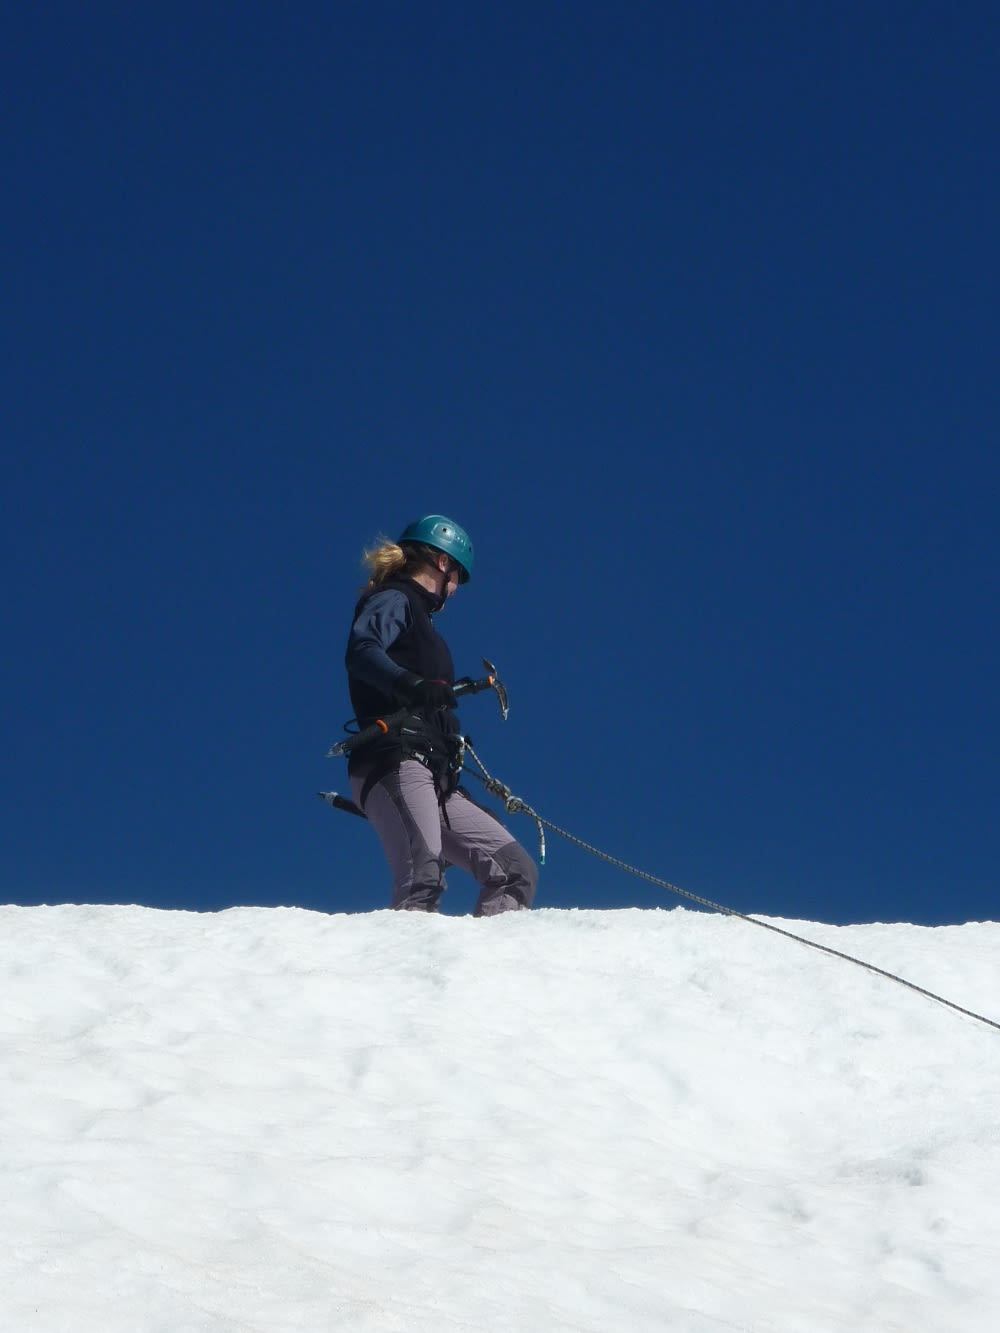 Arriving at the top. Perfect conditions, snow and blue sky